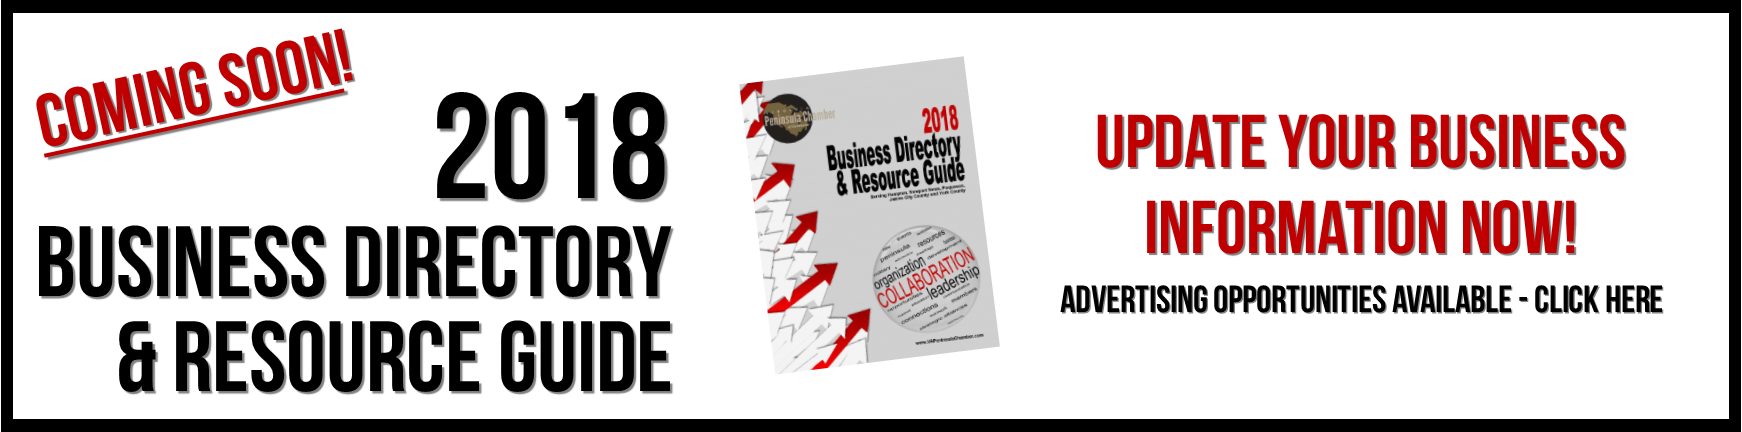 2018-Business-Directory-and-Resource-Guide-Banner-(UPDATED-1128).png